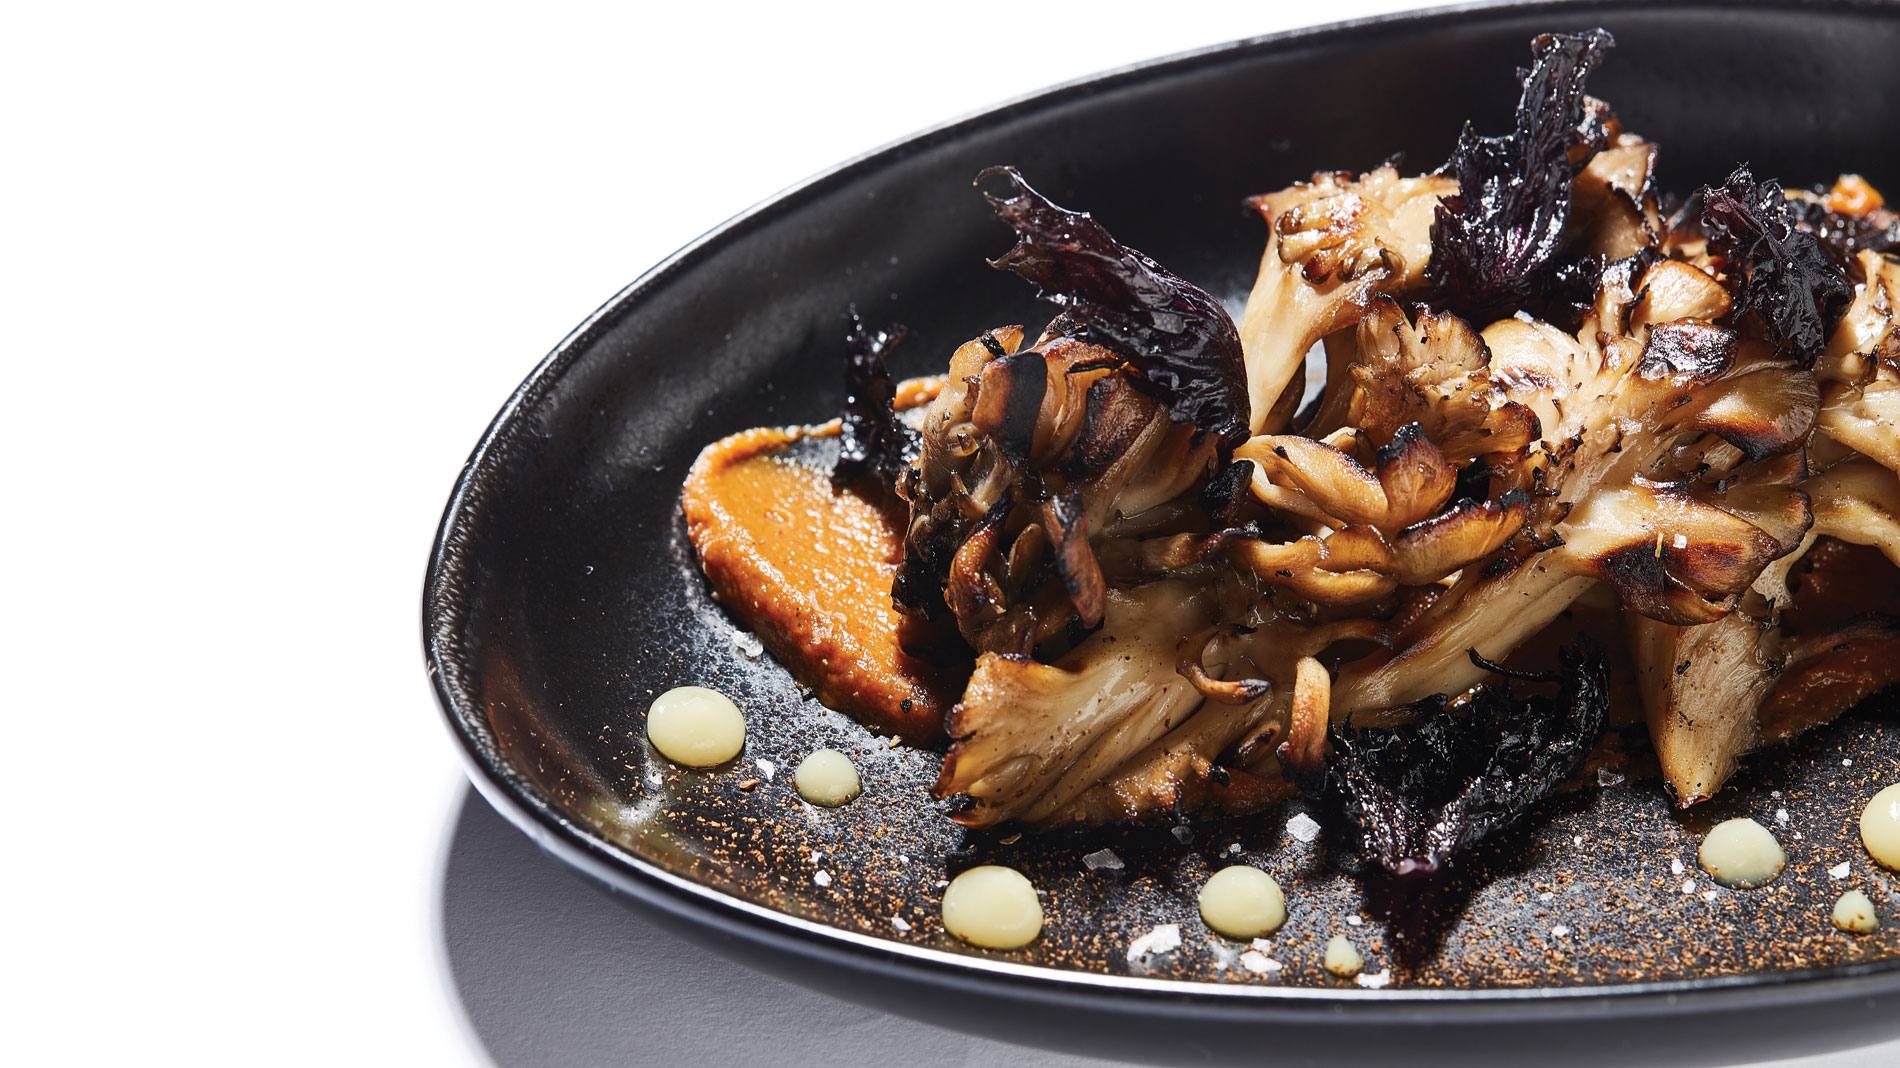 hen of the woods mushrooms on a black plate at good fortune in st. louis